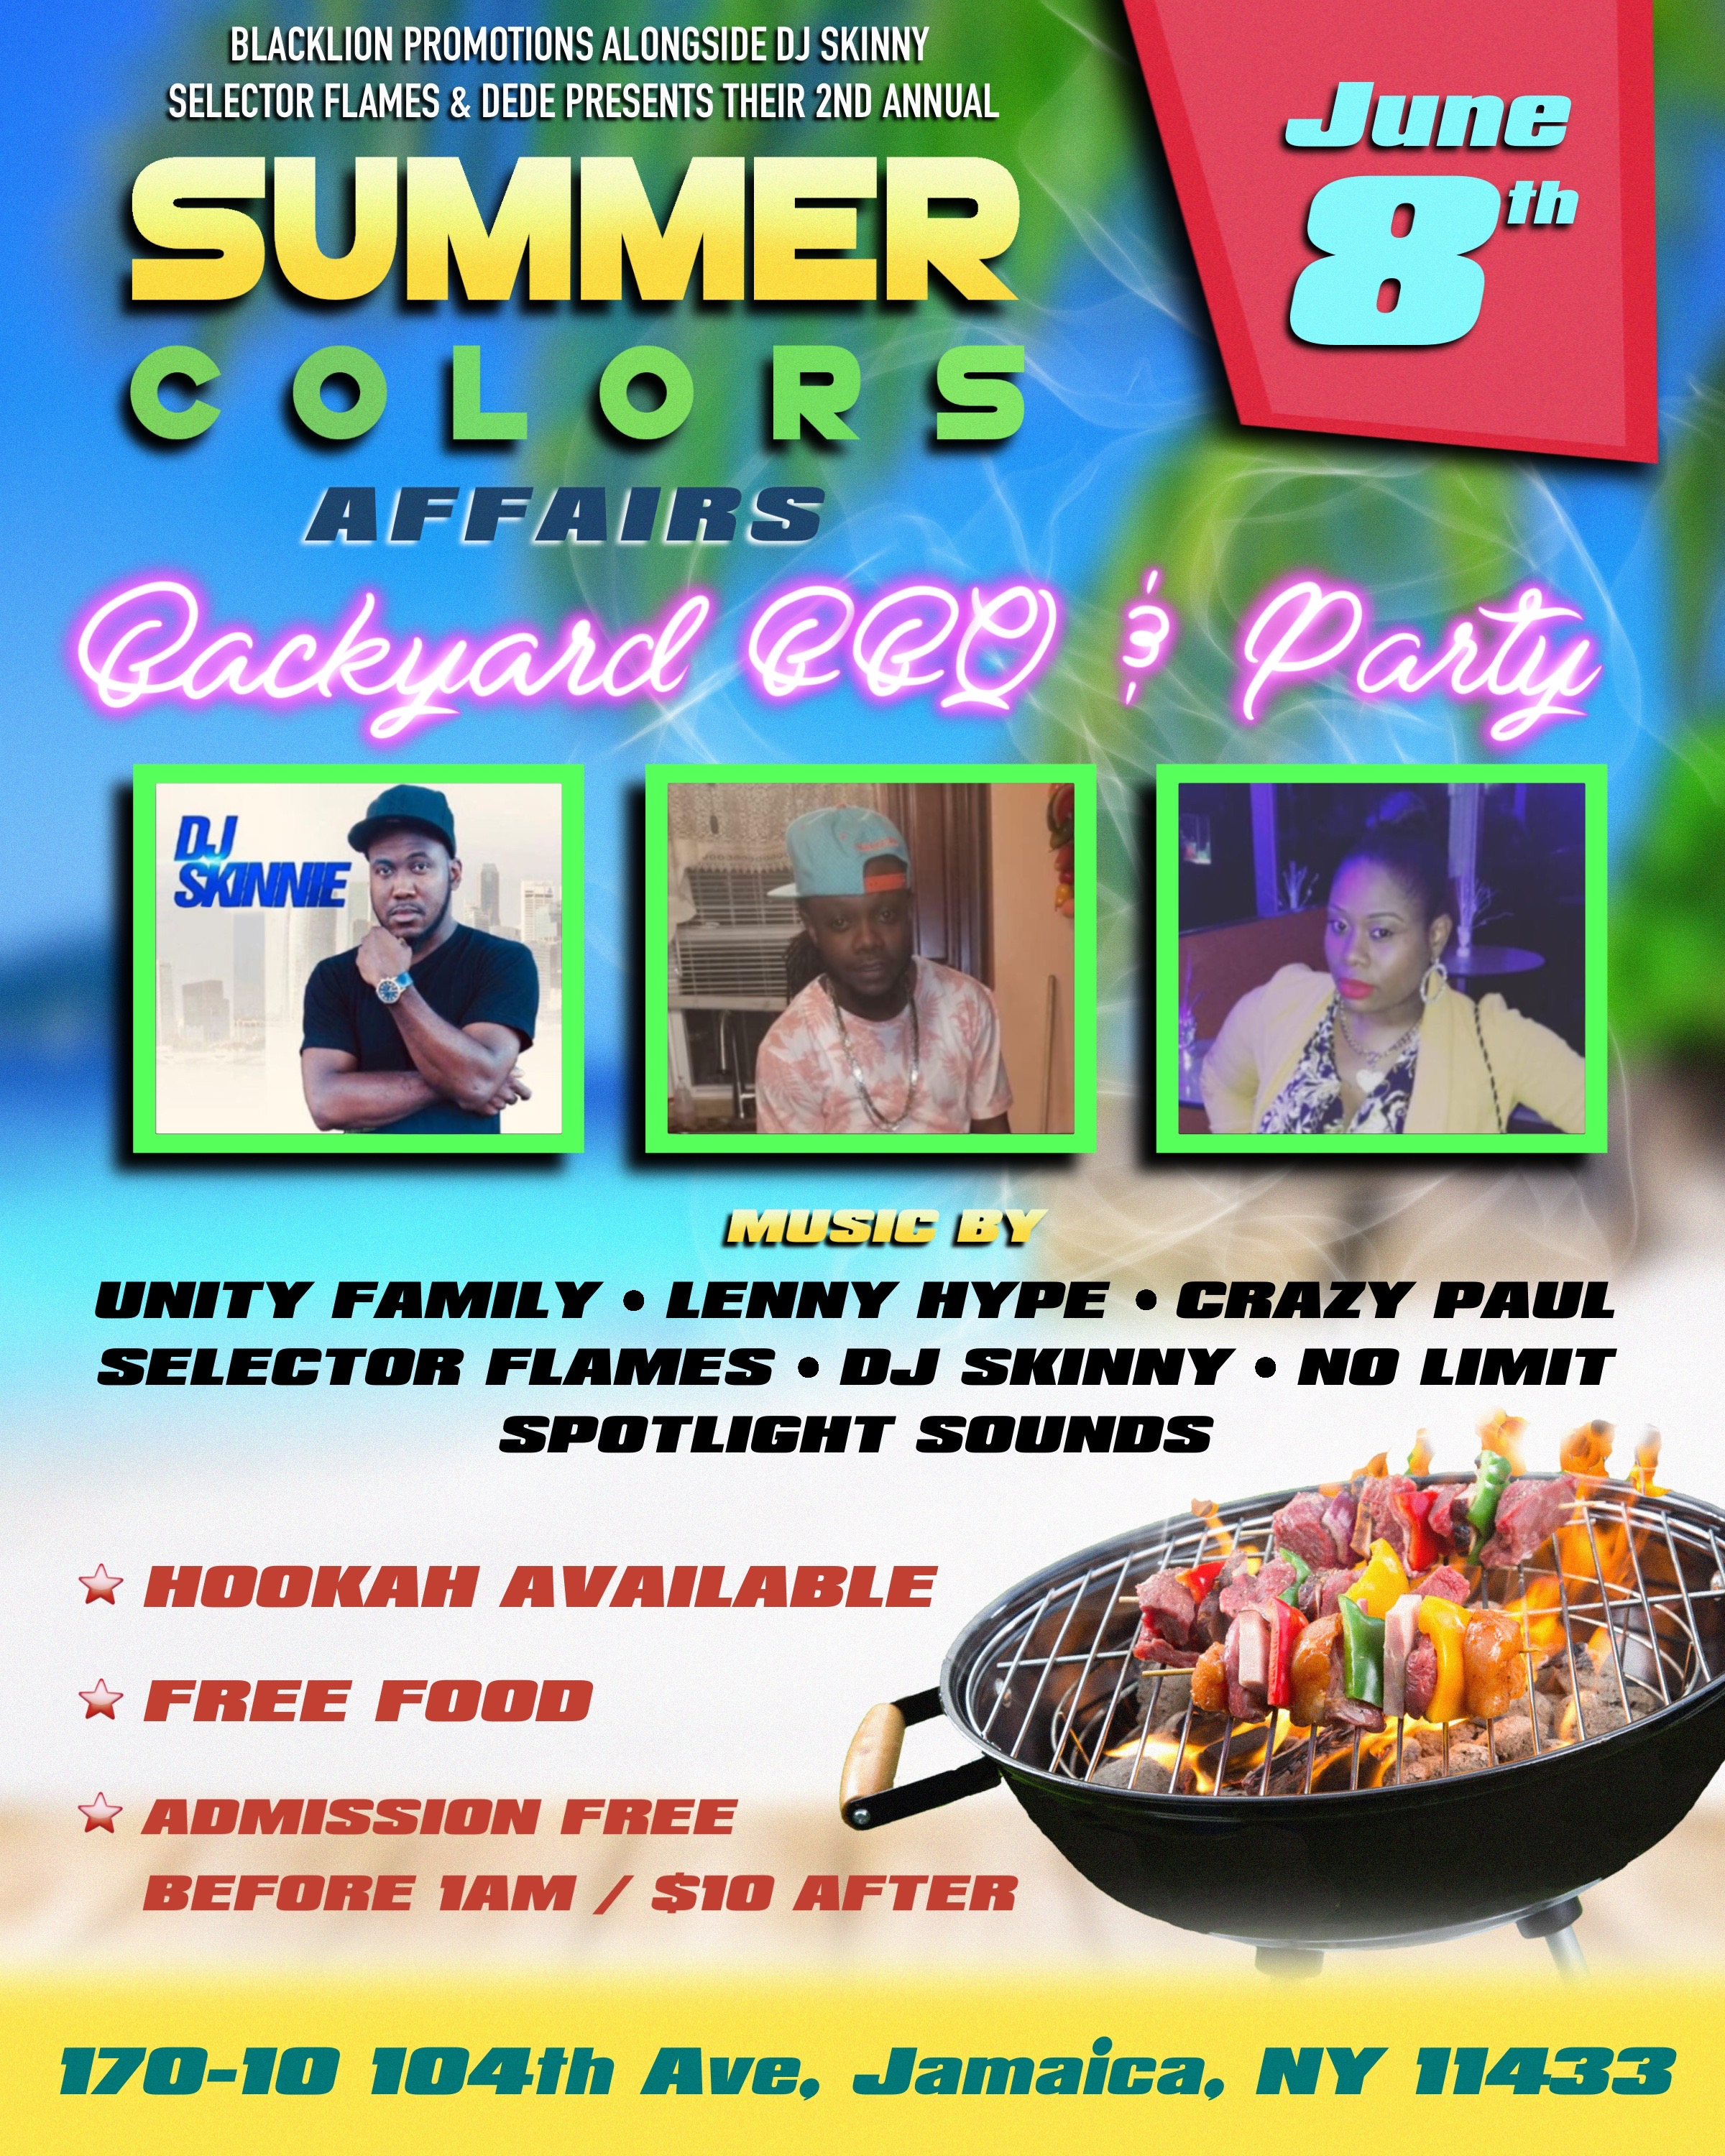 SUMMER COLORS FLYER